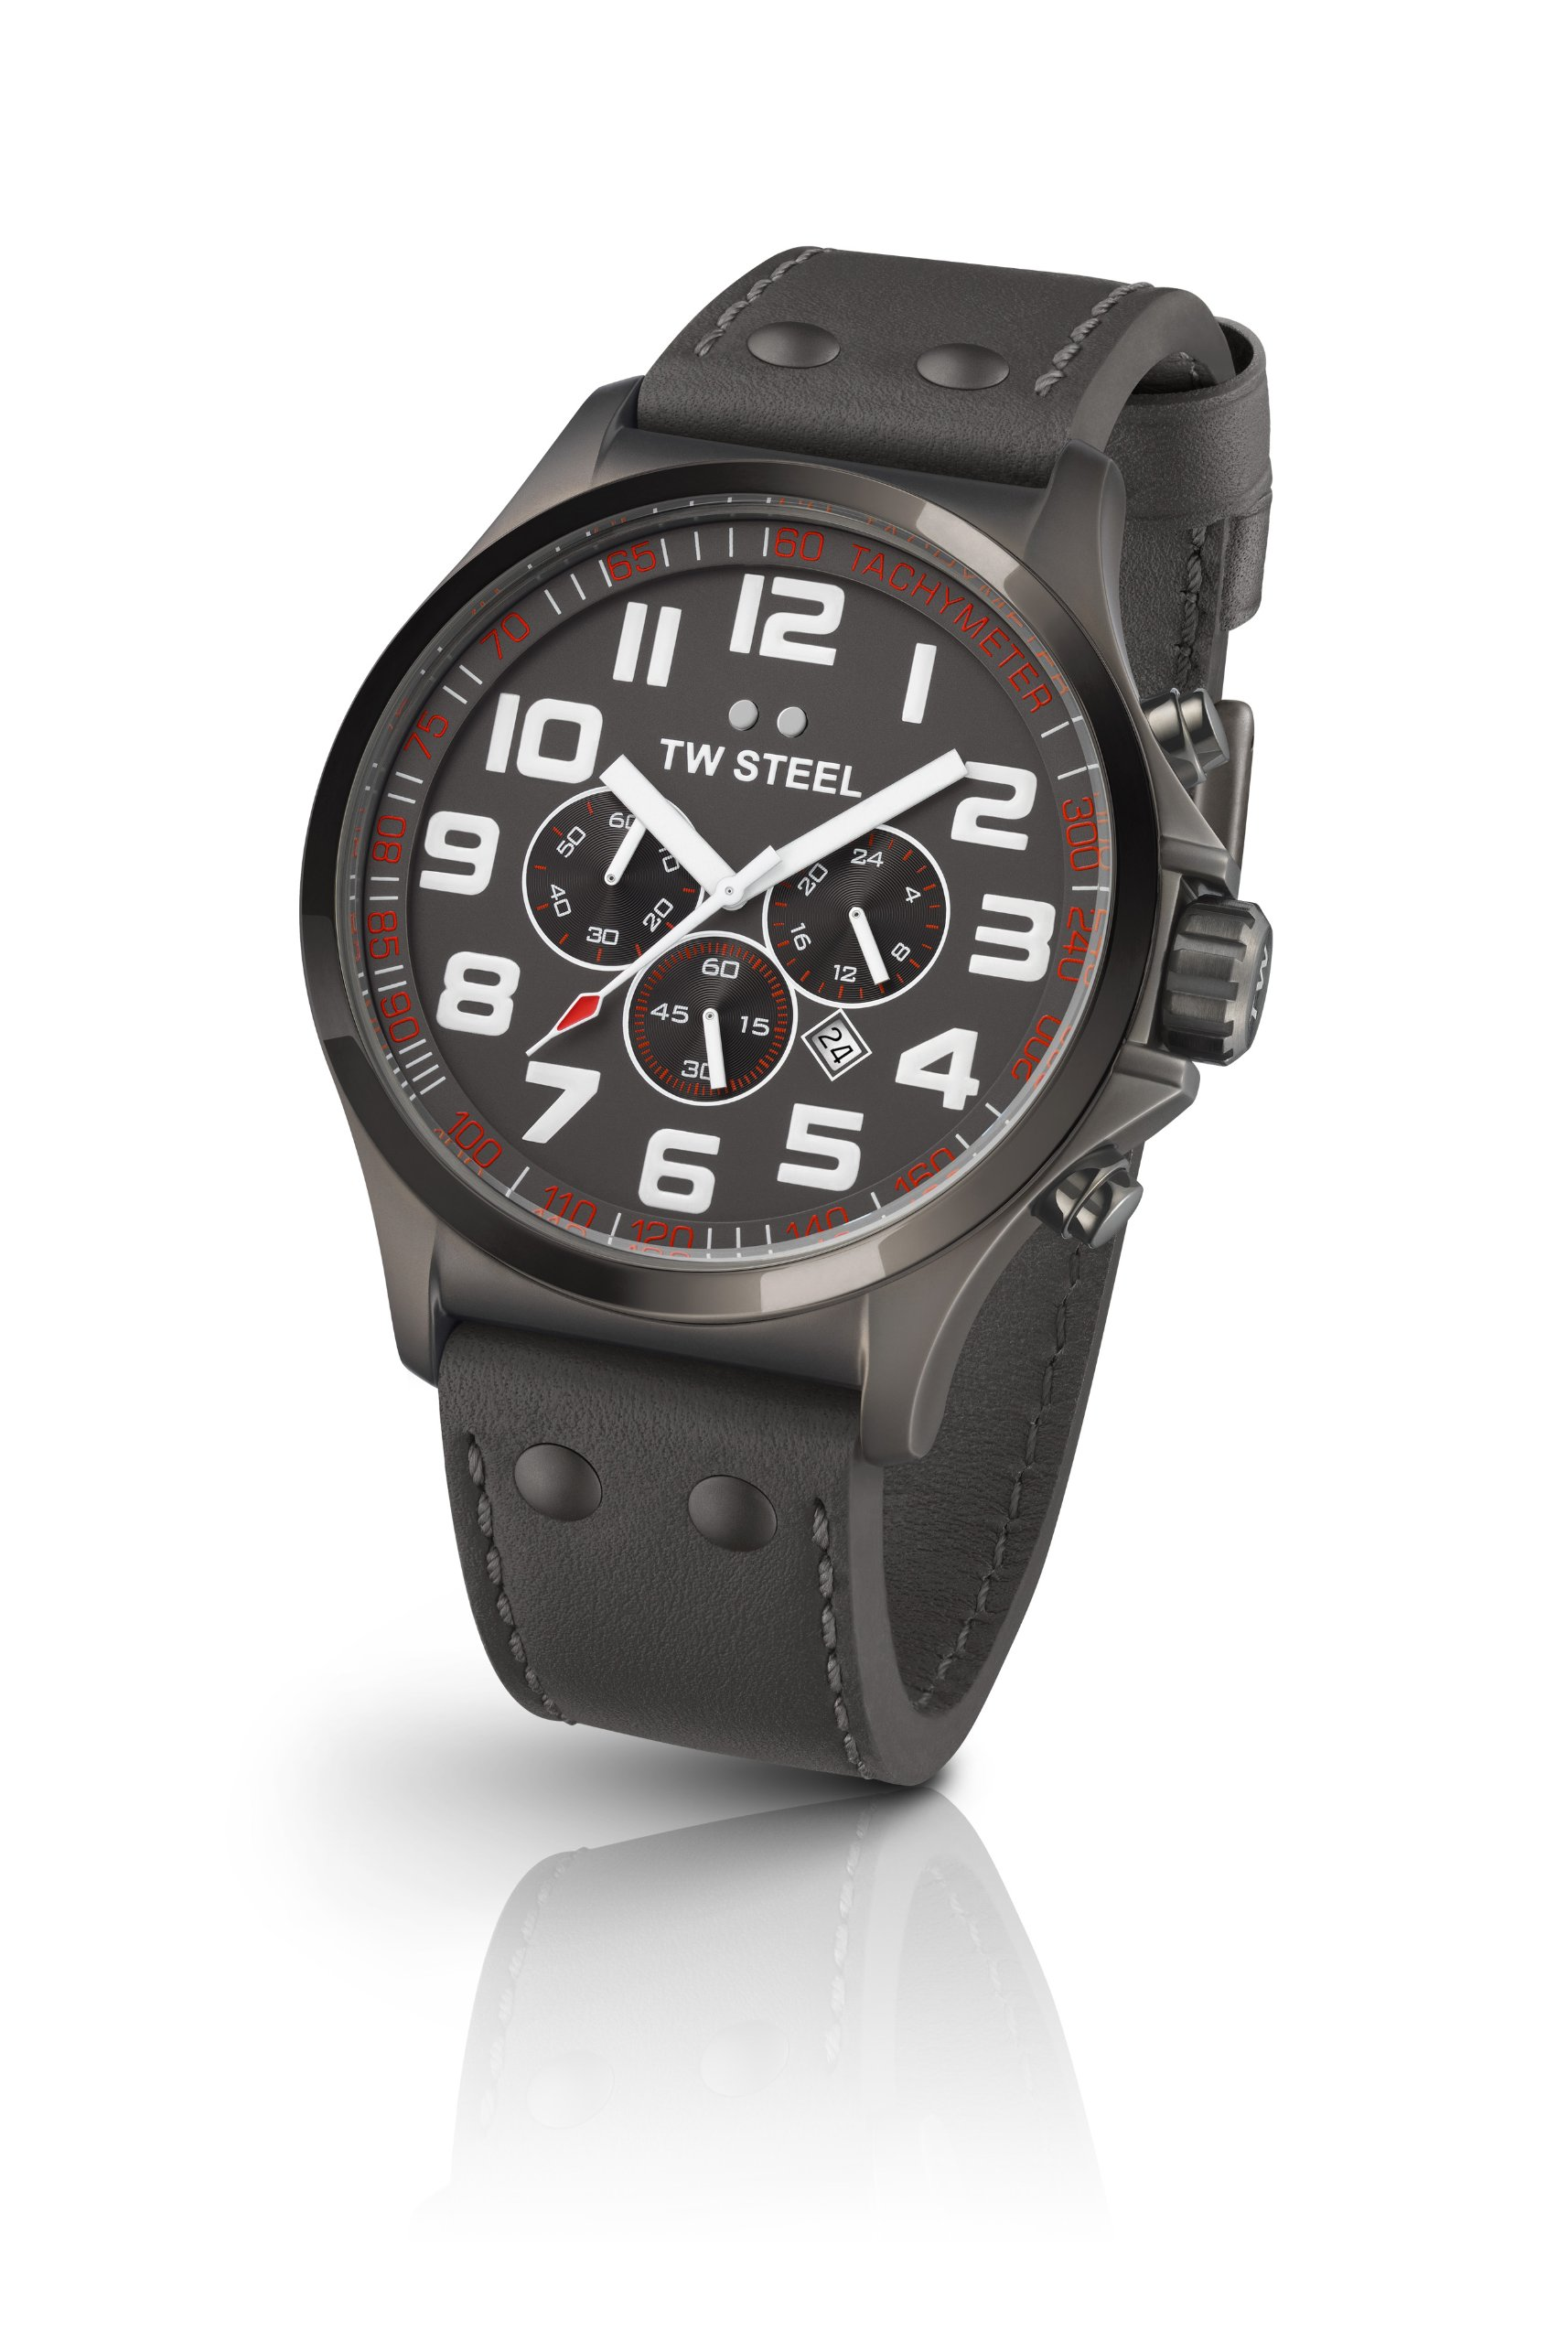 TW Steel Pilot Unisex Quartz Watch with Grey Dial Chronograph Display and Grey Leather Strap TW422 by TW Steel